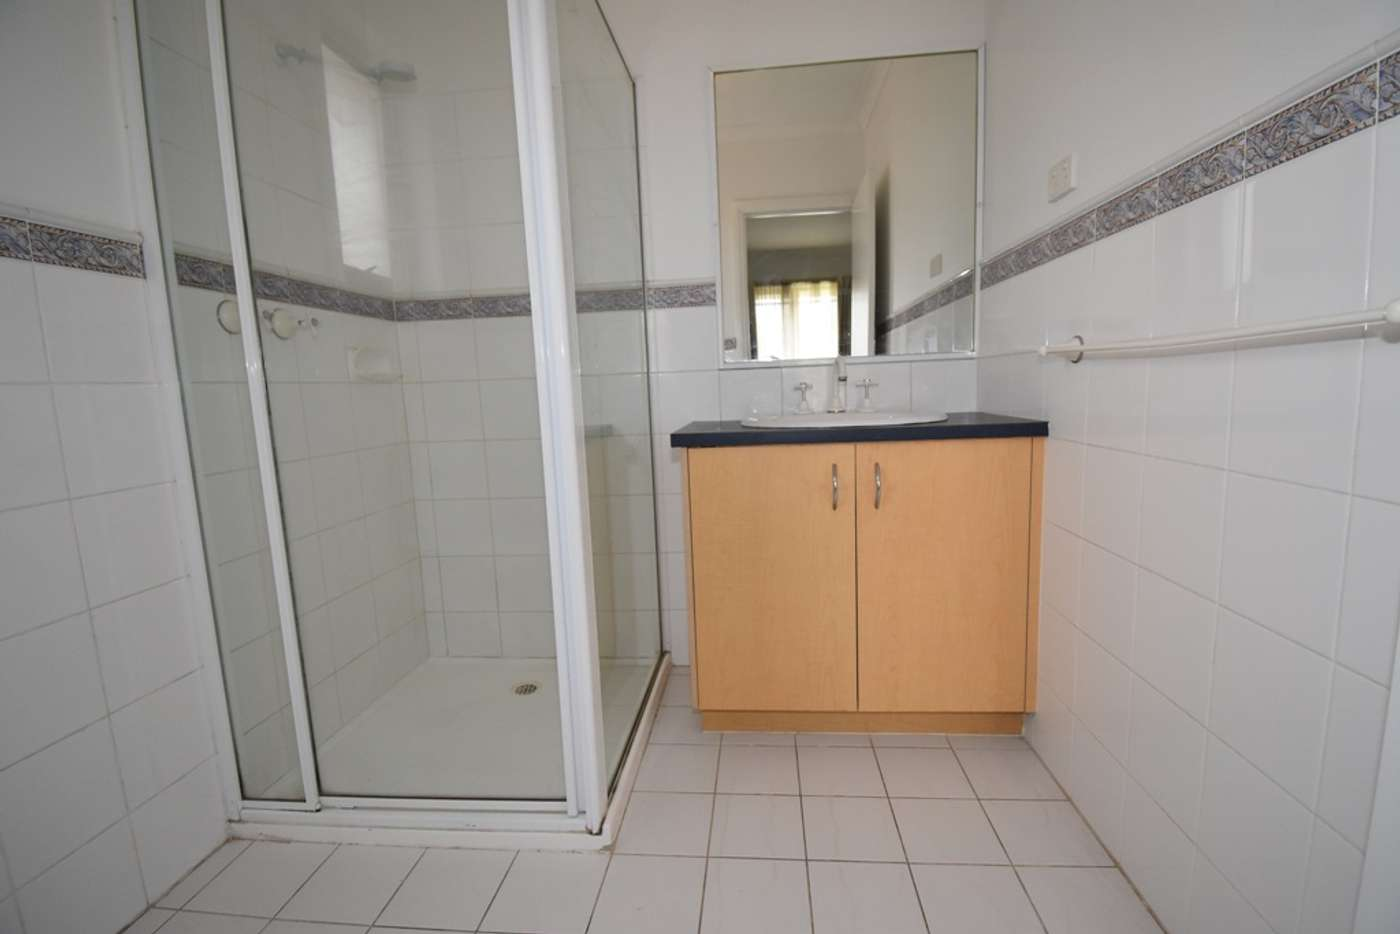 Seventh view of Homely townhouse listing, 1/12 Bleazby Street, Bentleigh VIC 3204